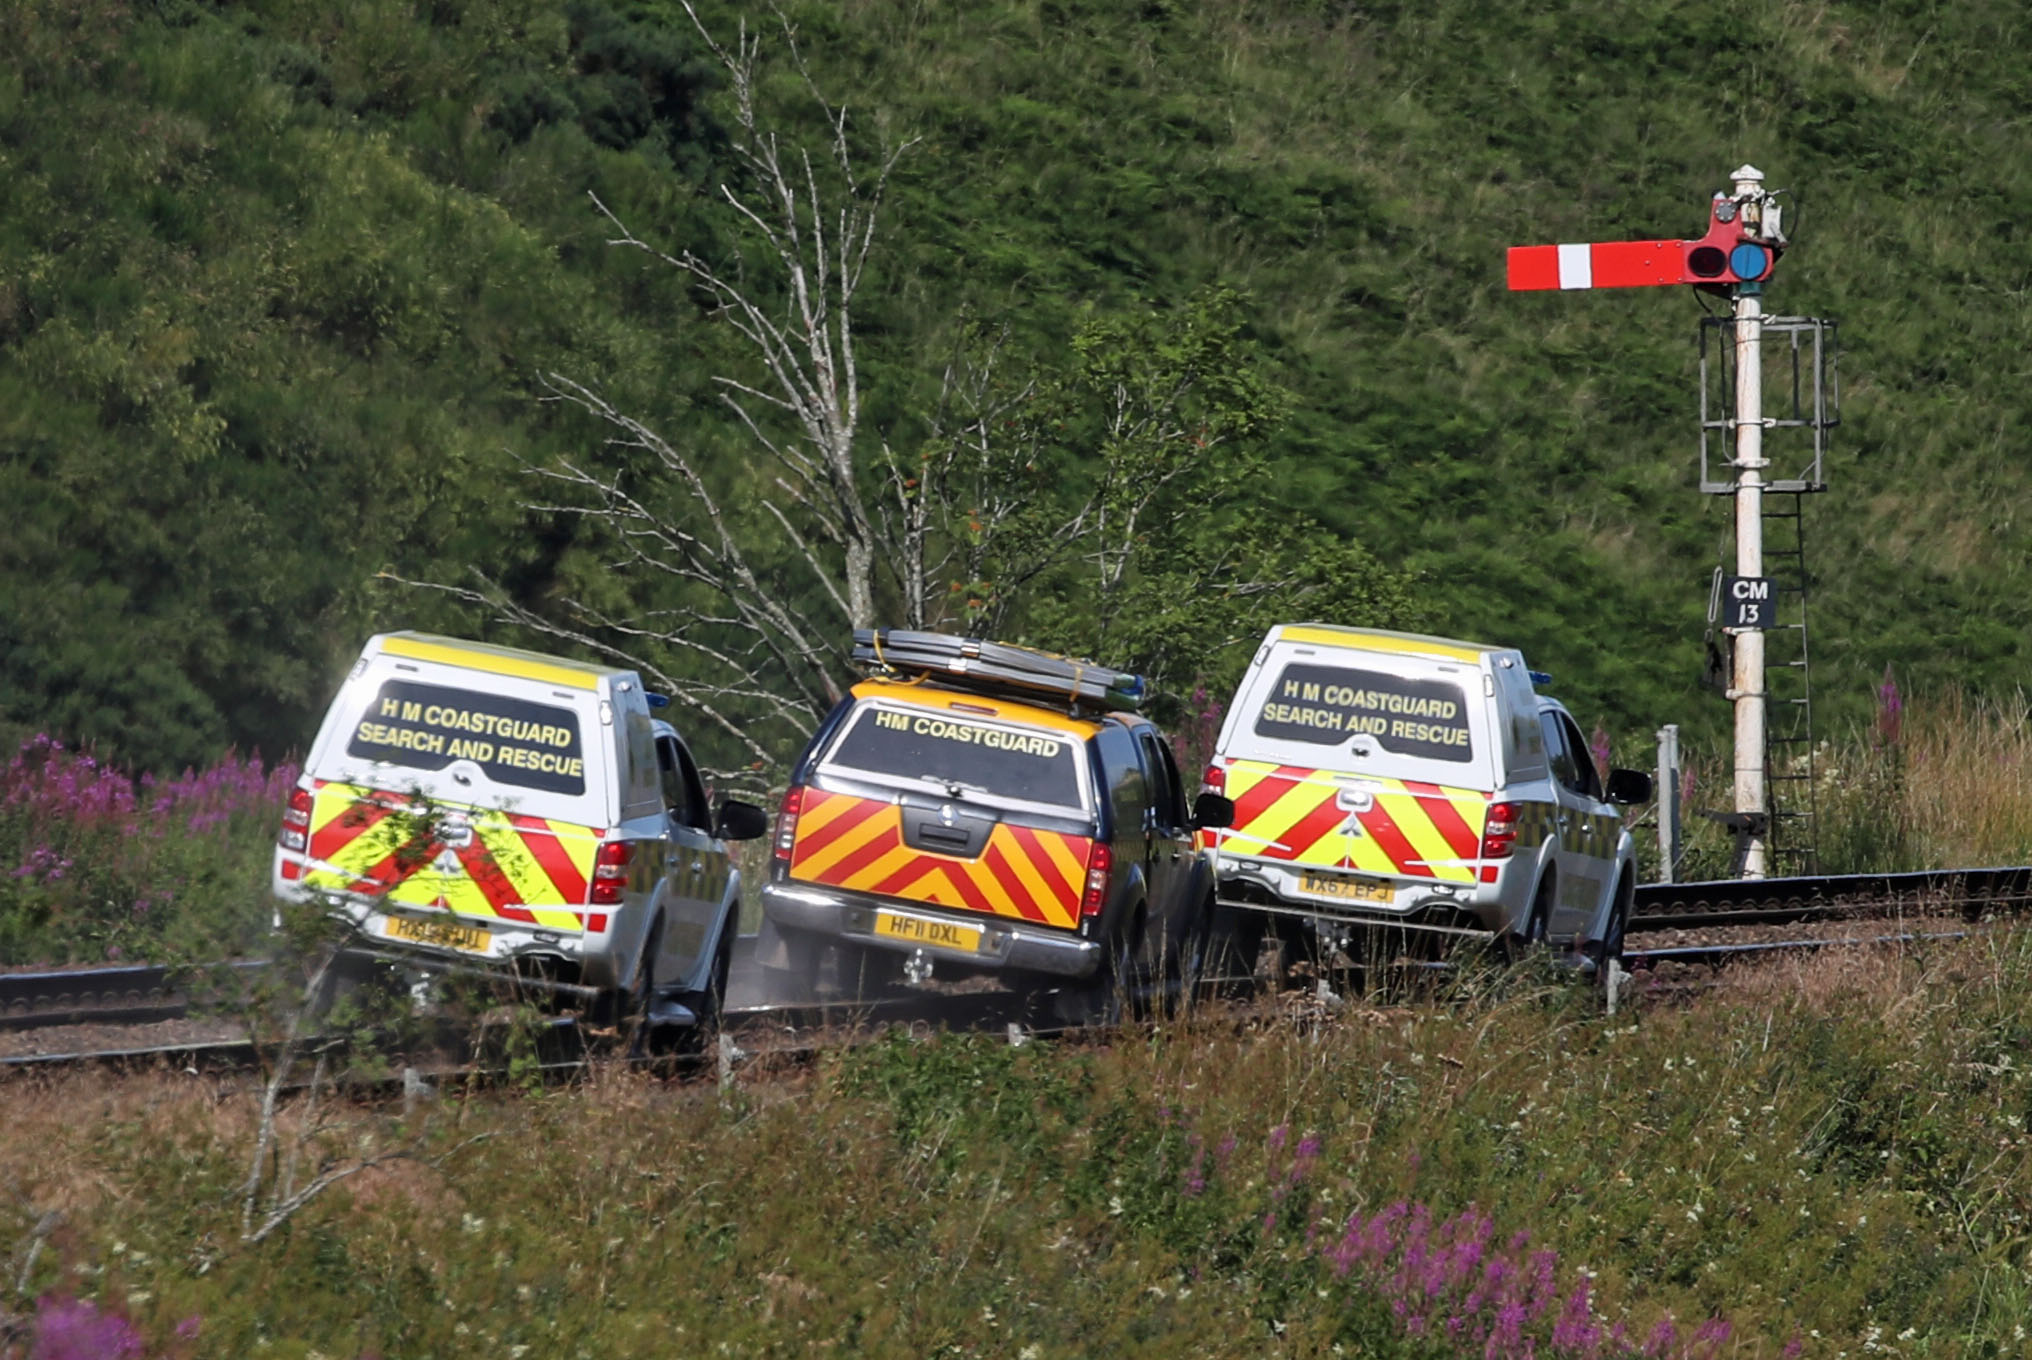 HM Coastguard vehicles at Carmont crossing, where they are accessing the train line from the road, south of the scene in Stonehaven, Aberdeenshire, where the 06.38 Aberdeen to Stonehaven ScotRail train derailed at about 9.40am this morning. The fire service, police and ambulance service are in attendance and the incident is ongoing. (Photo by Jane Barlow/PA Images via Getty Images)